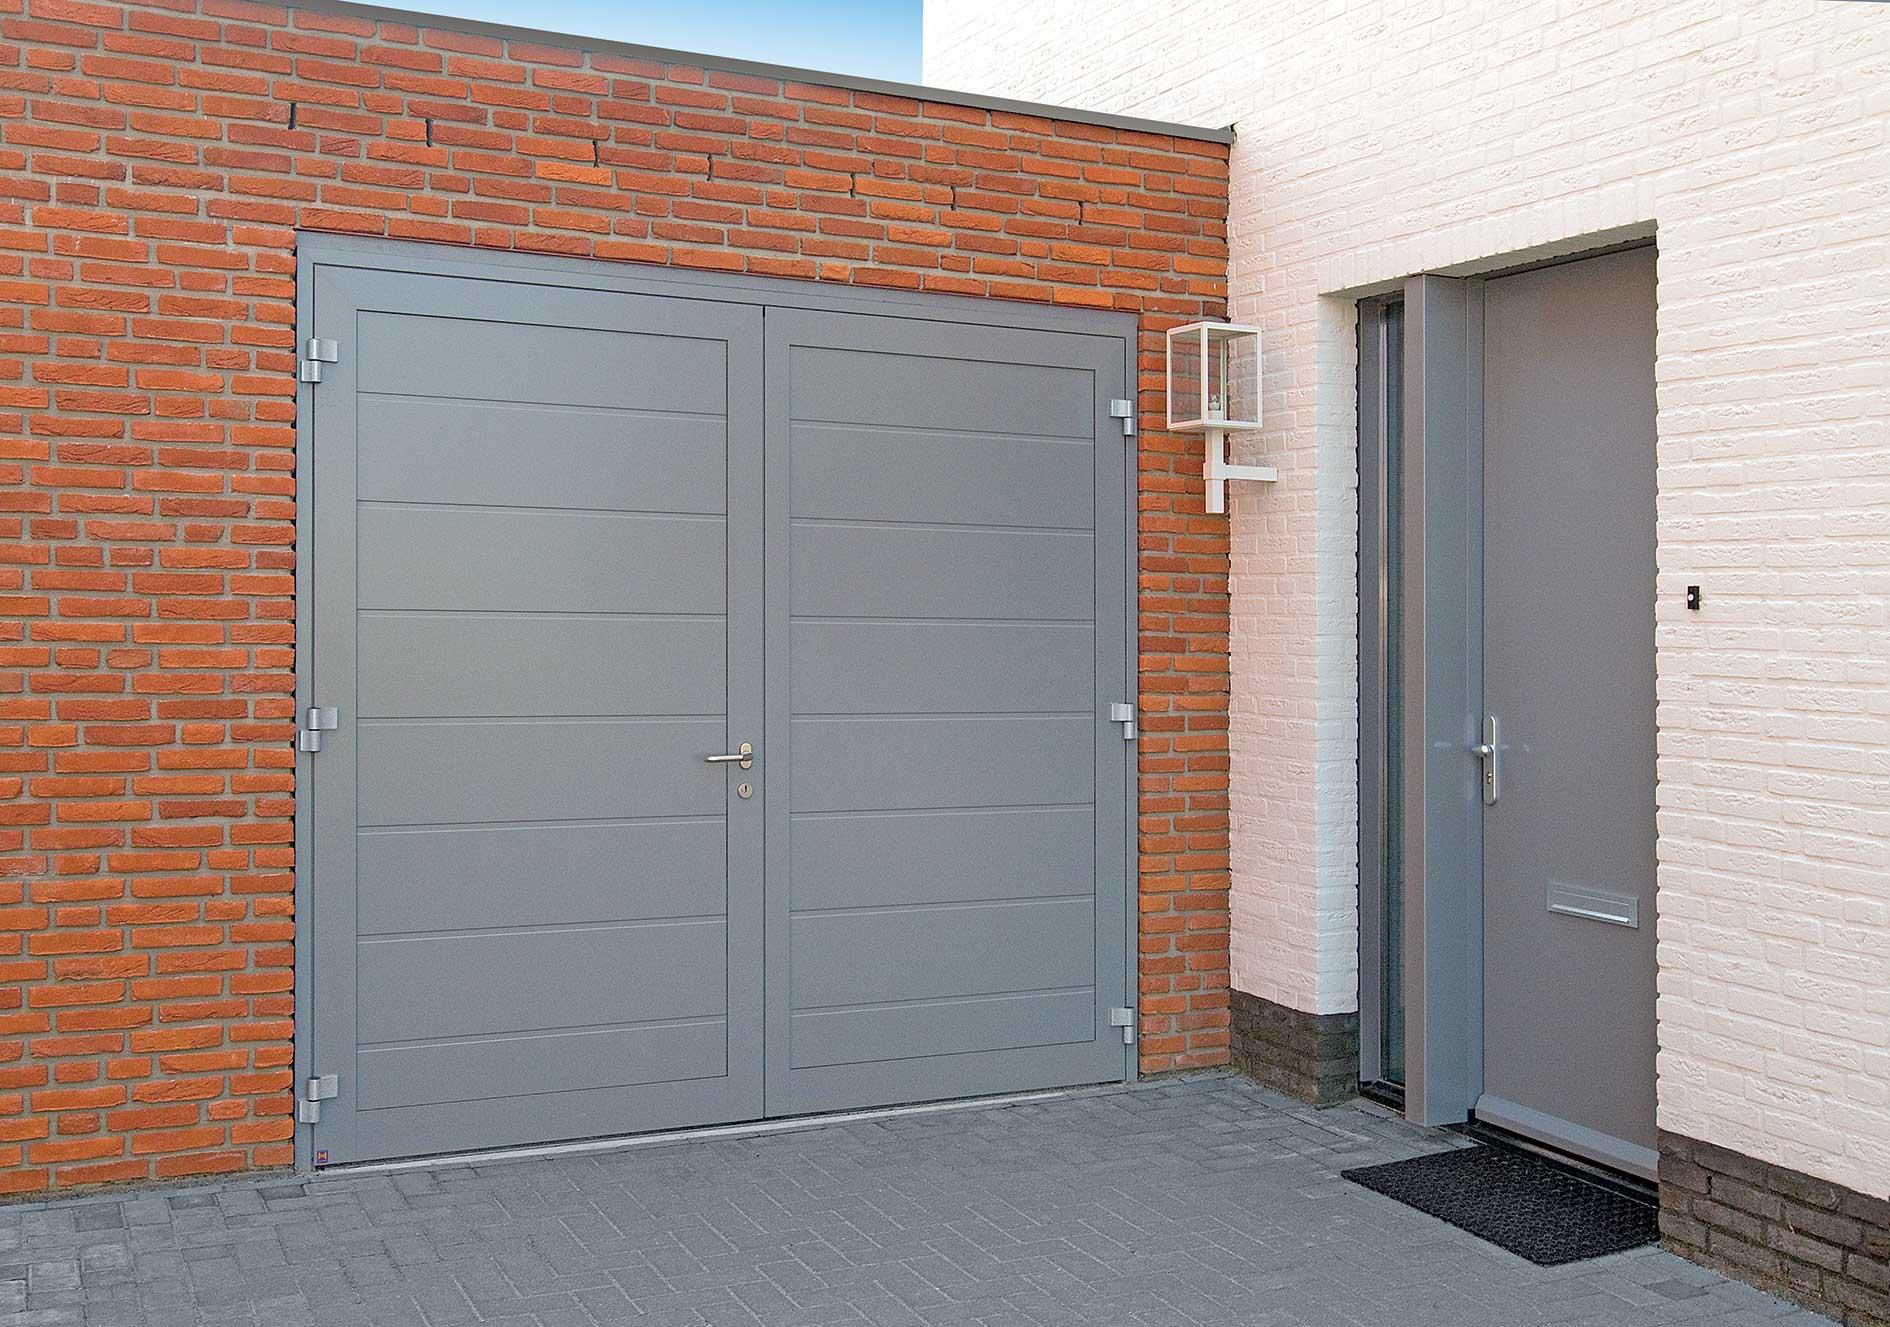 How to Choose the Right Garage Door Material for You